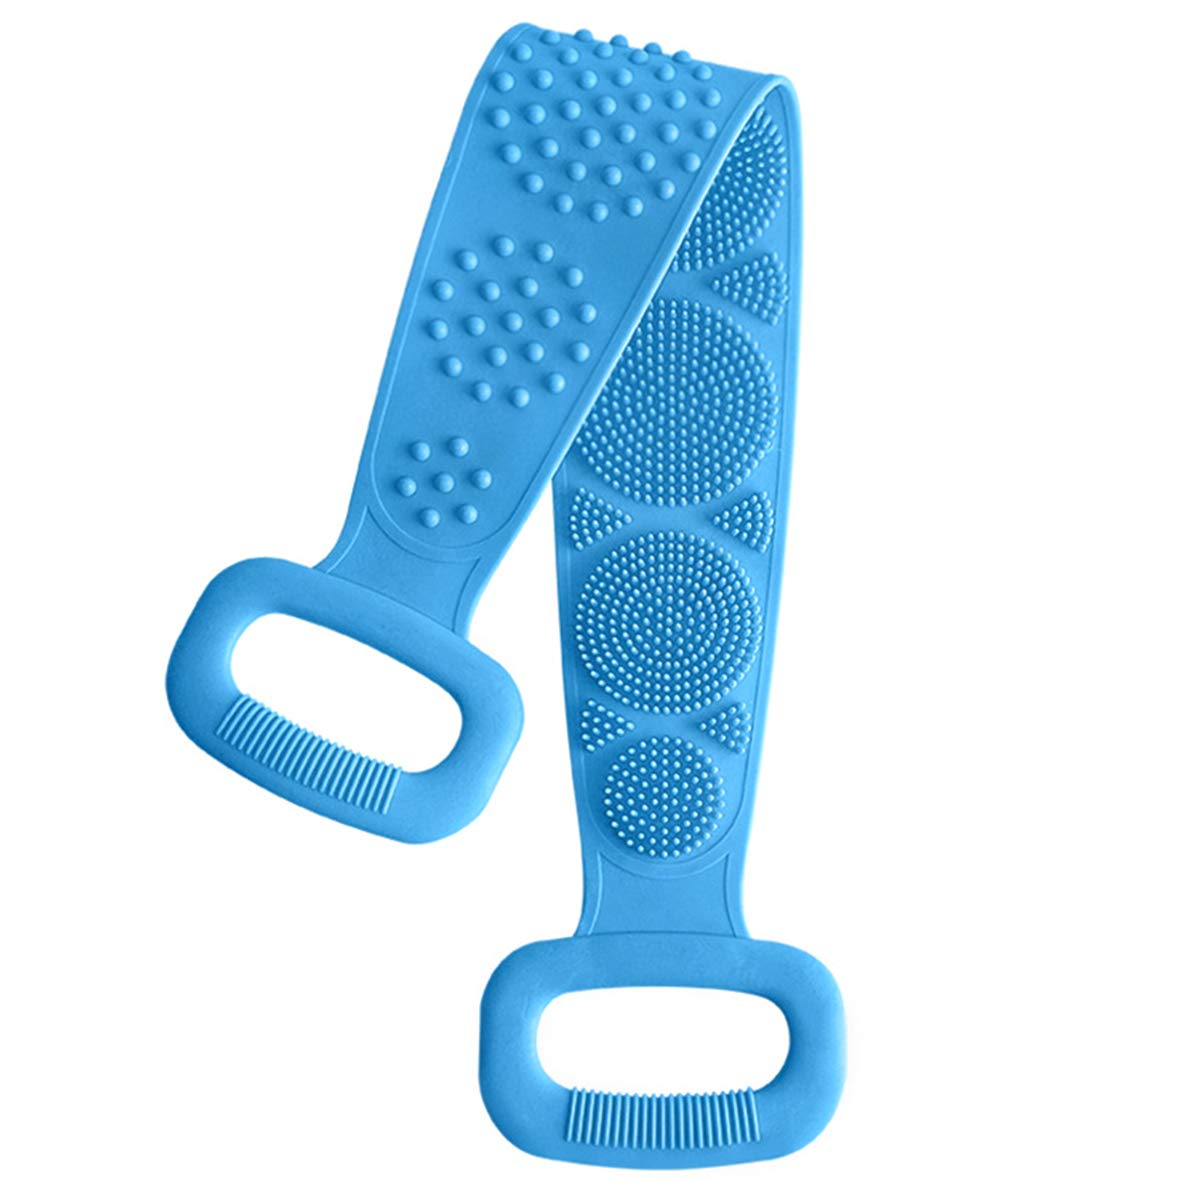 Silicone Bath Body Brush, Exfoliating Silicone Bath Shower Body Brush,Anti Mold Anti Bactria Non Toxic,Easy to Clean, Lathers Well, Eco Friendly, Long Lasting,for Women Men Kids and Baby(Blue)